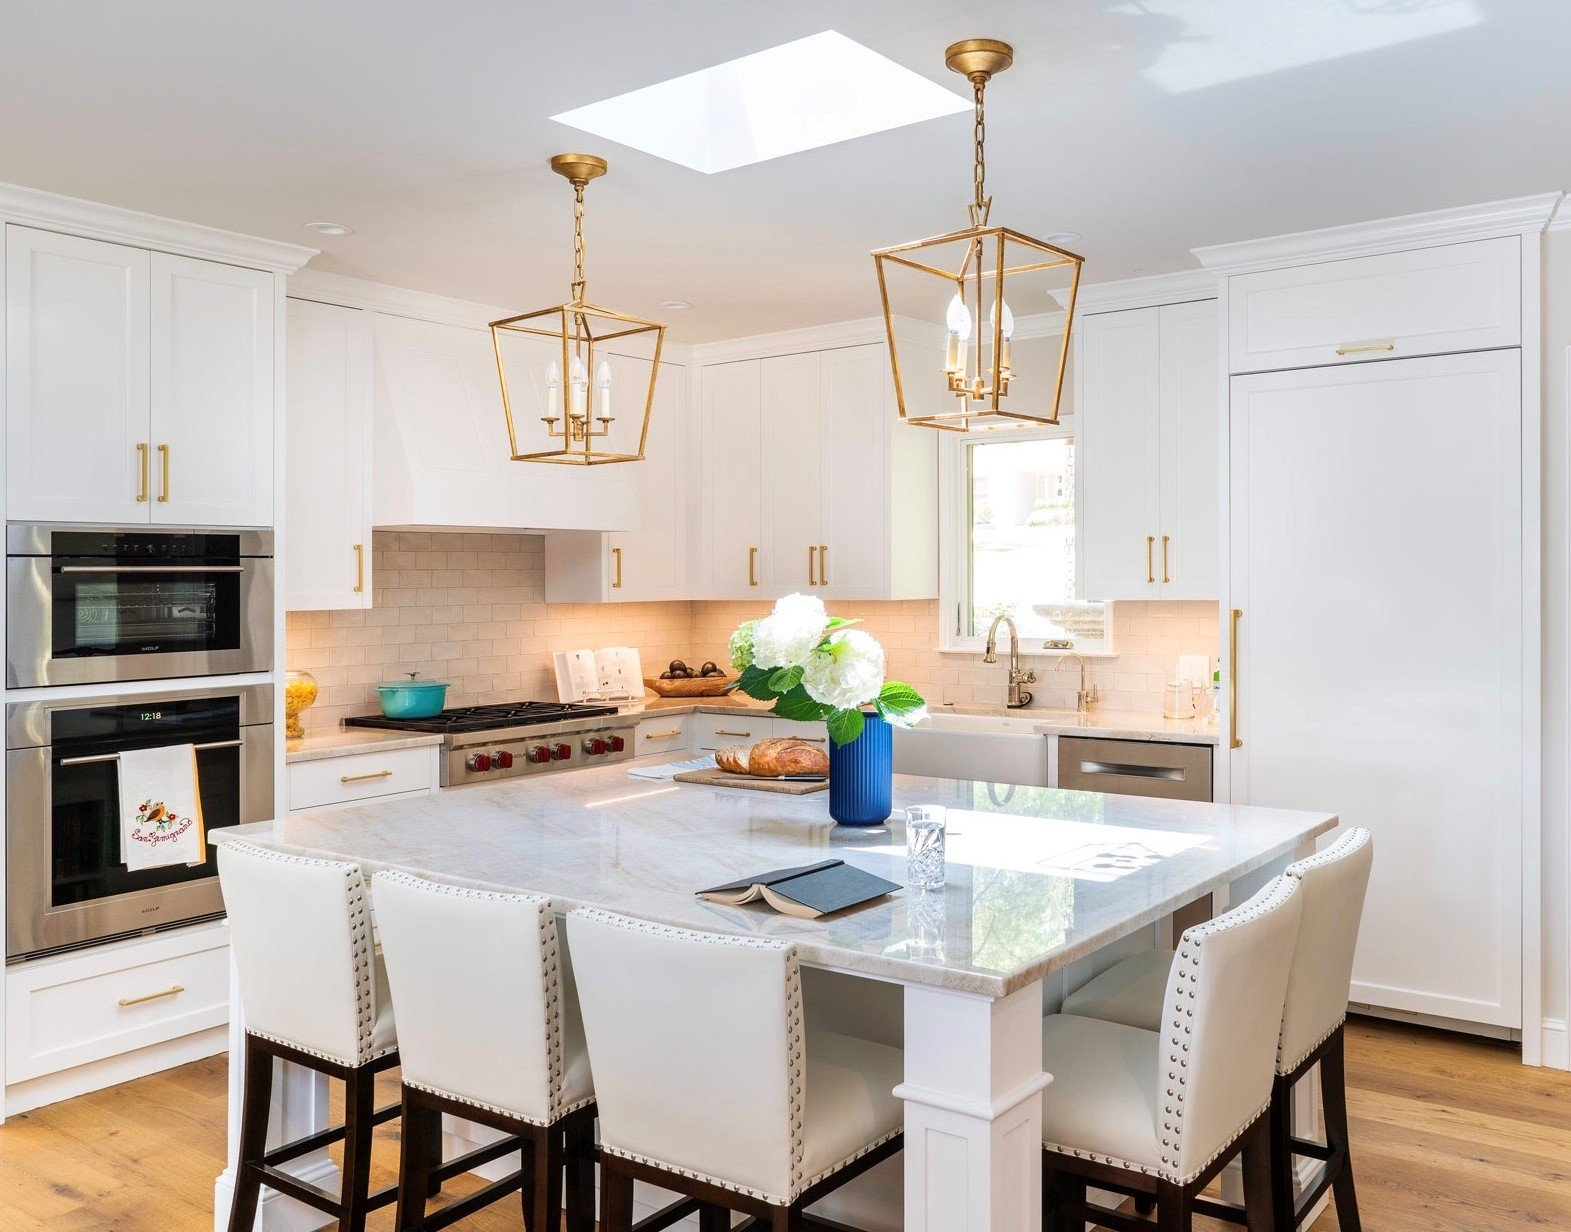 Kitchen island with clean counters and organized spaces.